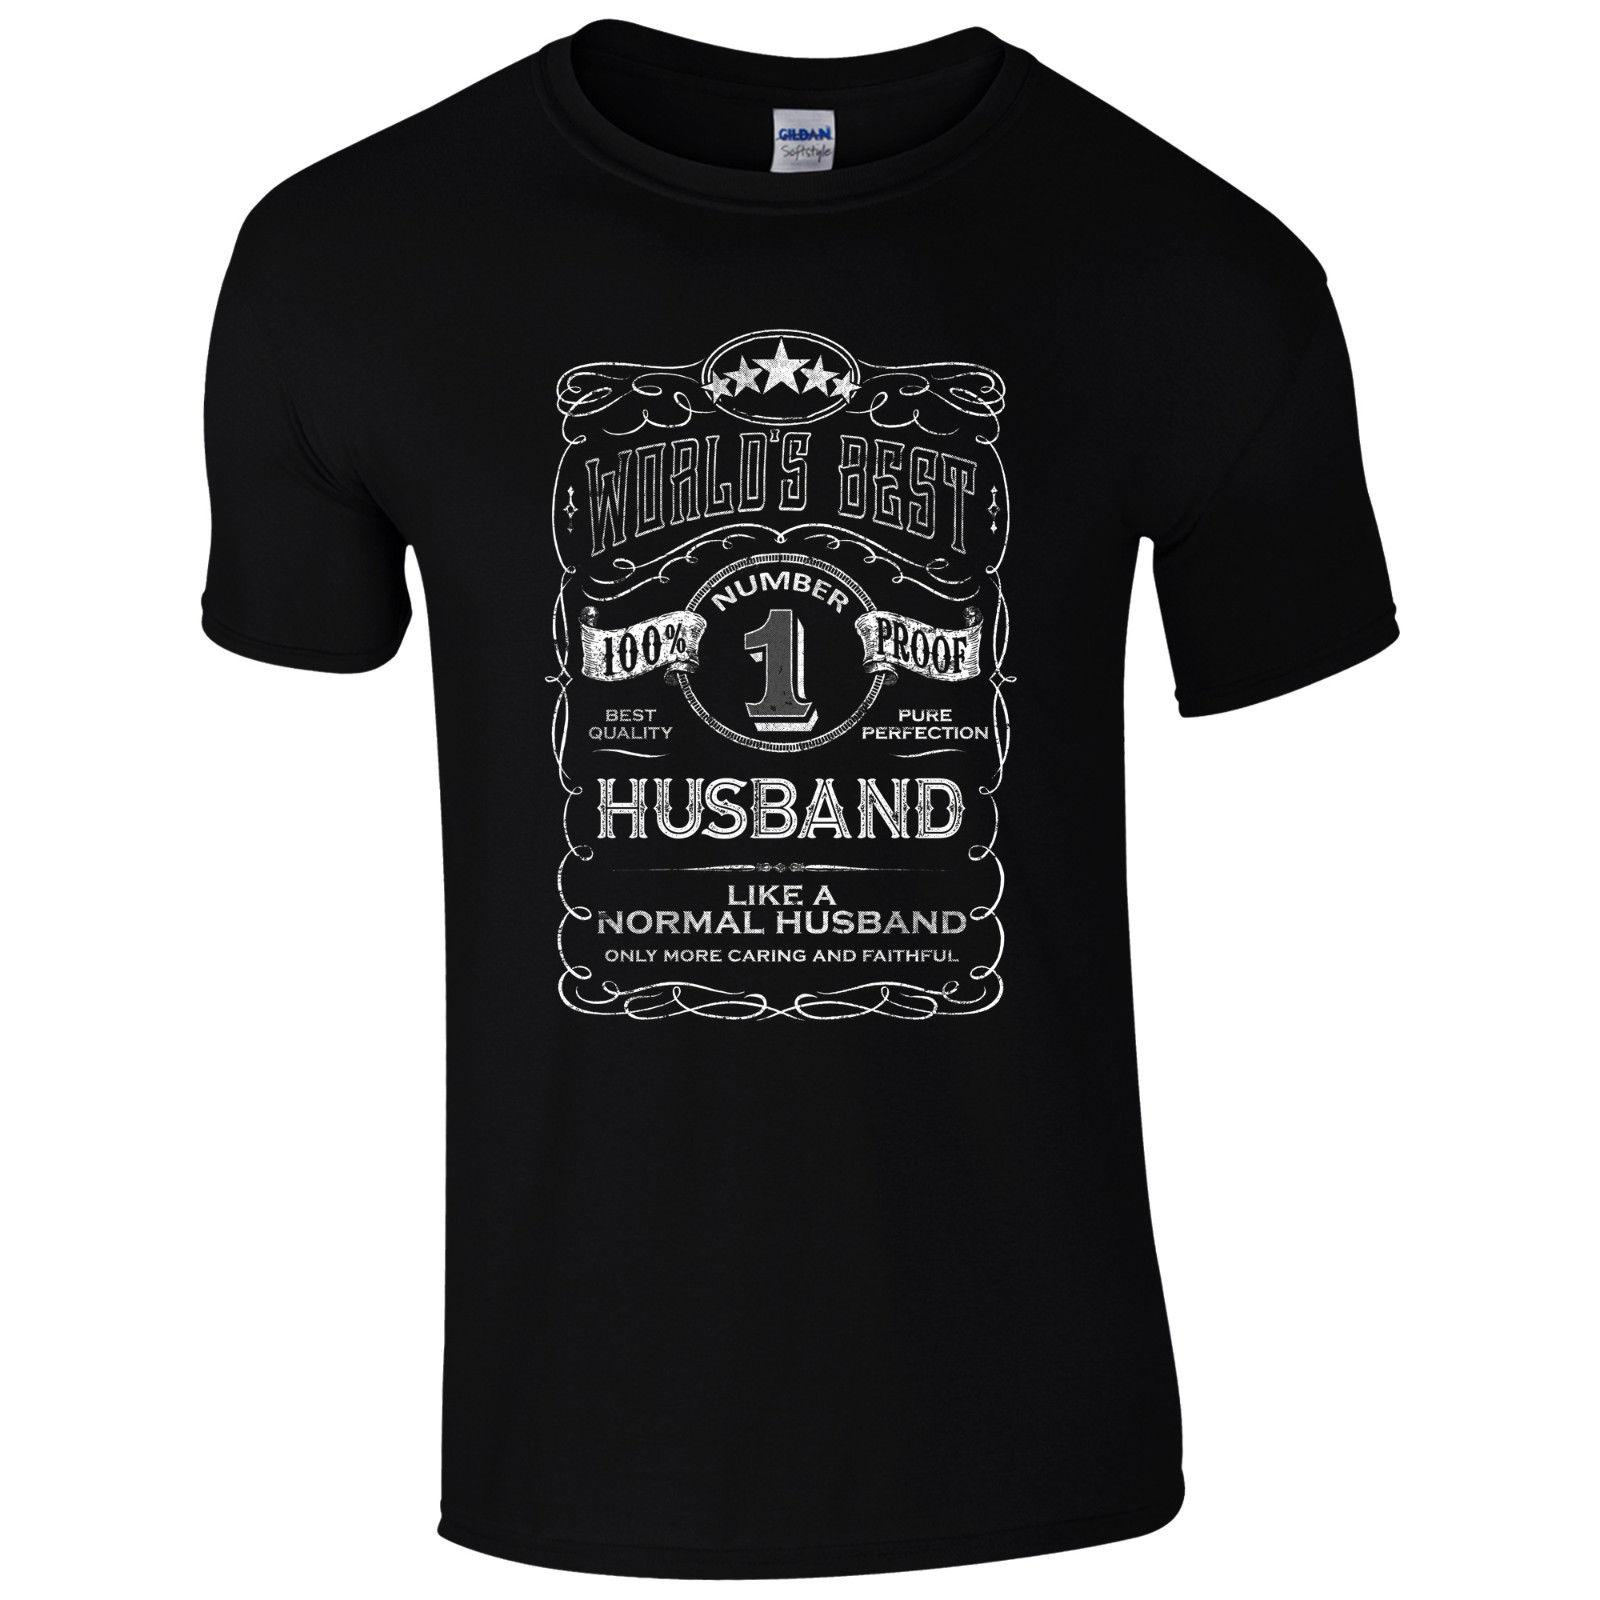 ba2c0f2fc World's Best Husband T-shirt Funny Fathers Day Dad Present Valentines Mens  Gift Cool Casual Pride T Shirt Men Unisex New Fashion